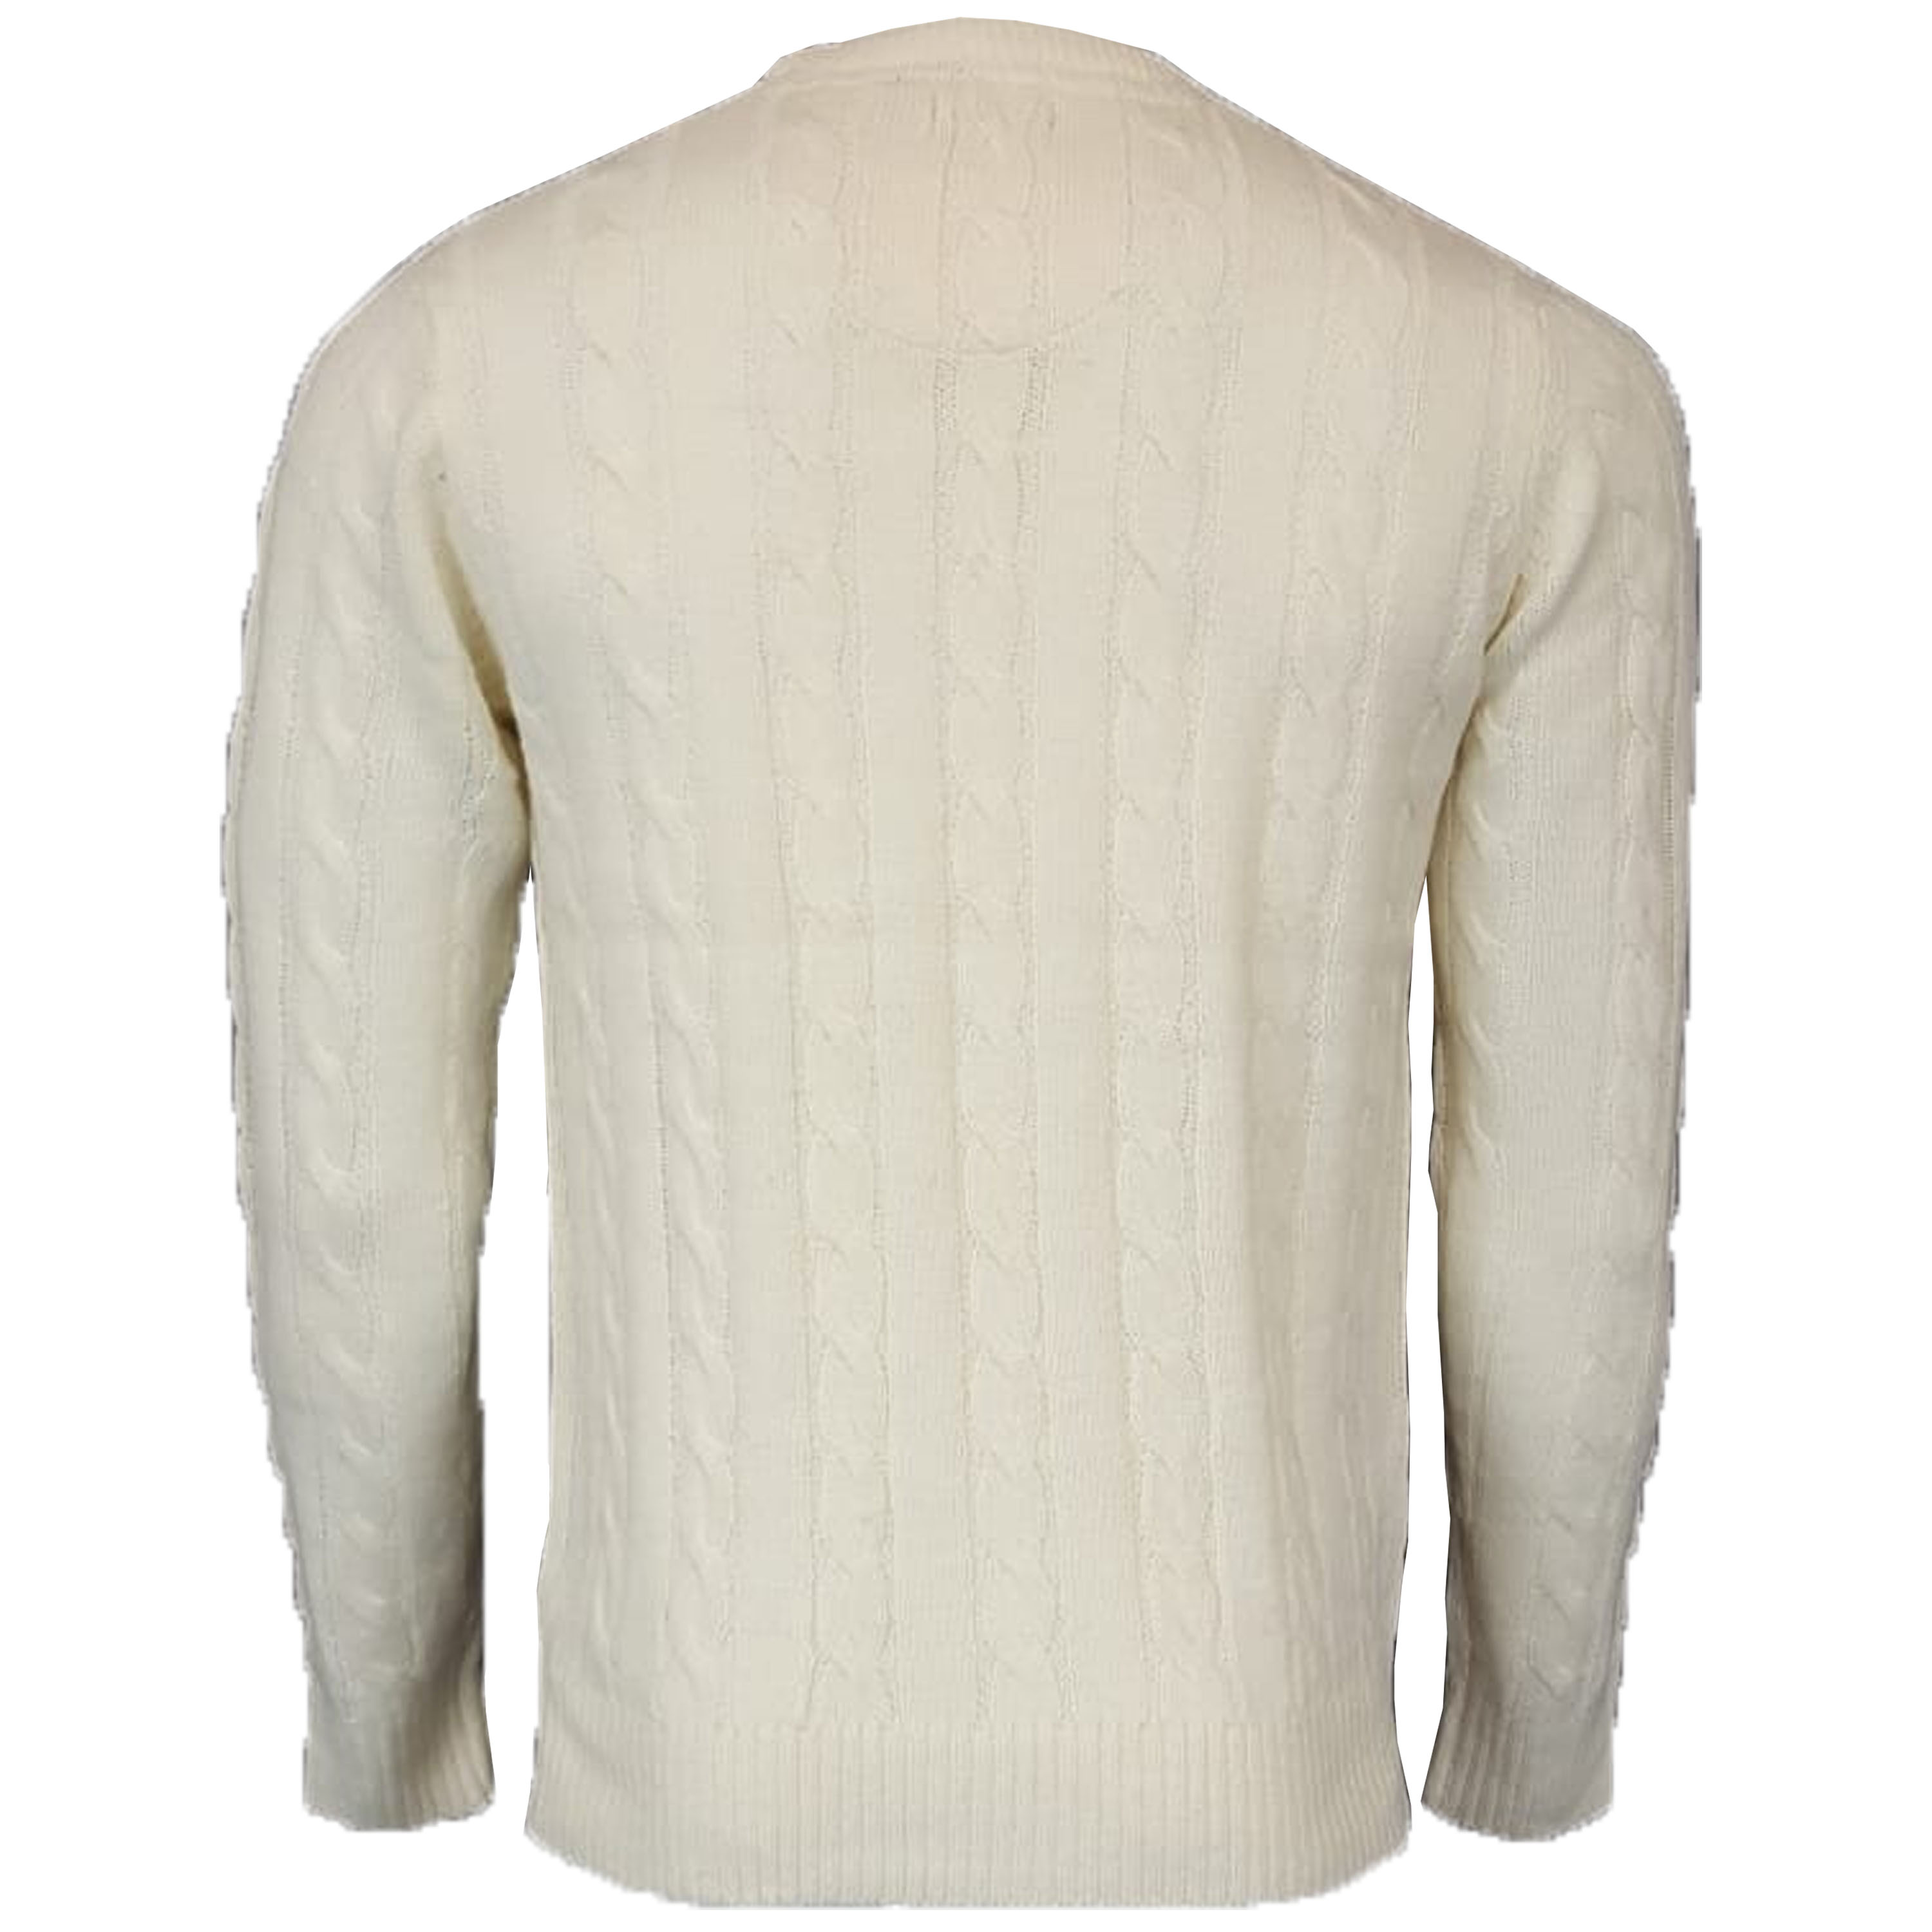 Mens-Jumper-Brave-Soul-Knitted-Sweater-Pullover-GOODWIN-Crew-Neck-Top-Winter-New thumbnail 24